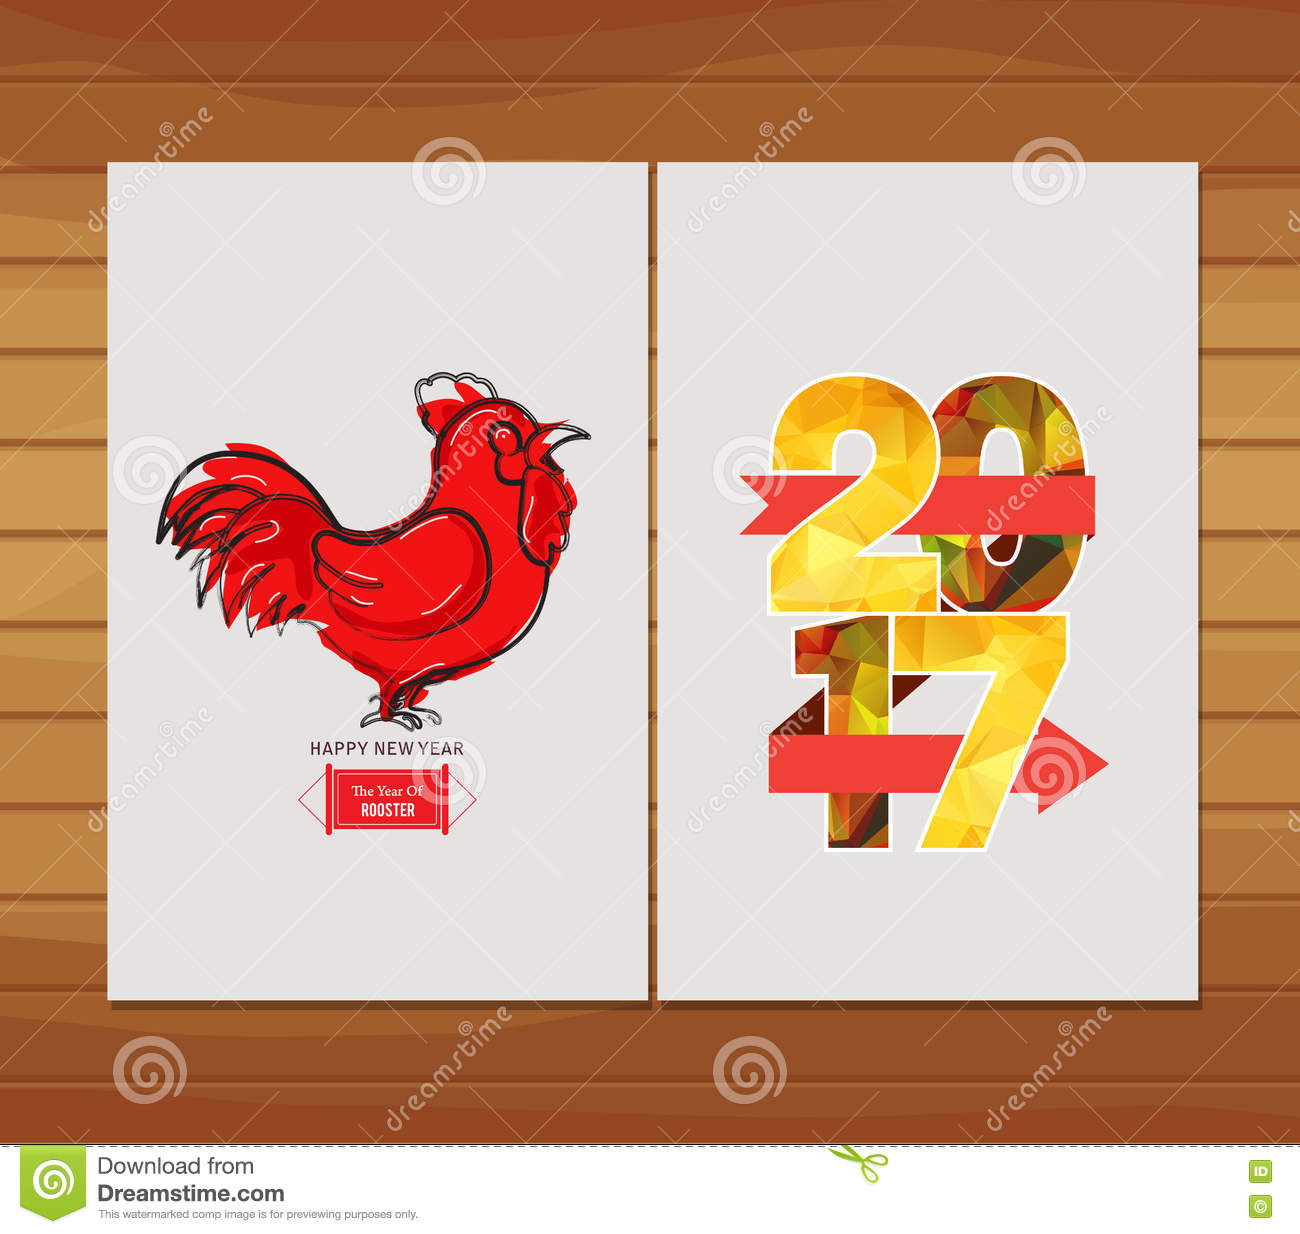 New year 2017 greeting pictures year of rooster happy chinese new year - Happy Chinese New Year 2017 Greeting Card Year Of The Rooster Stock Photo